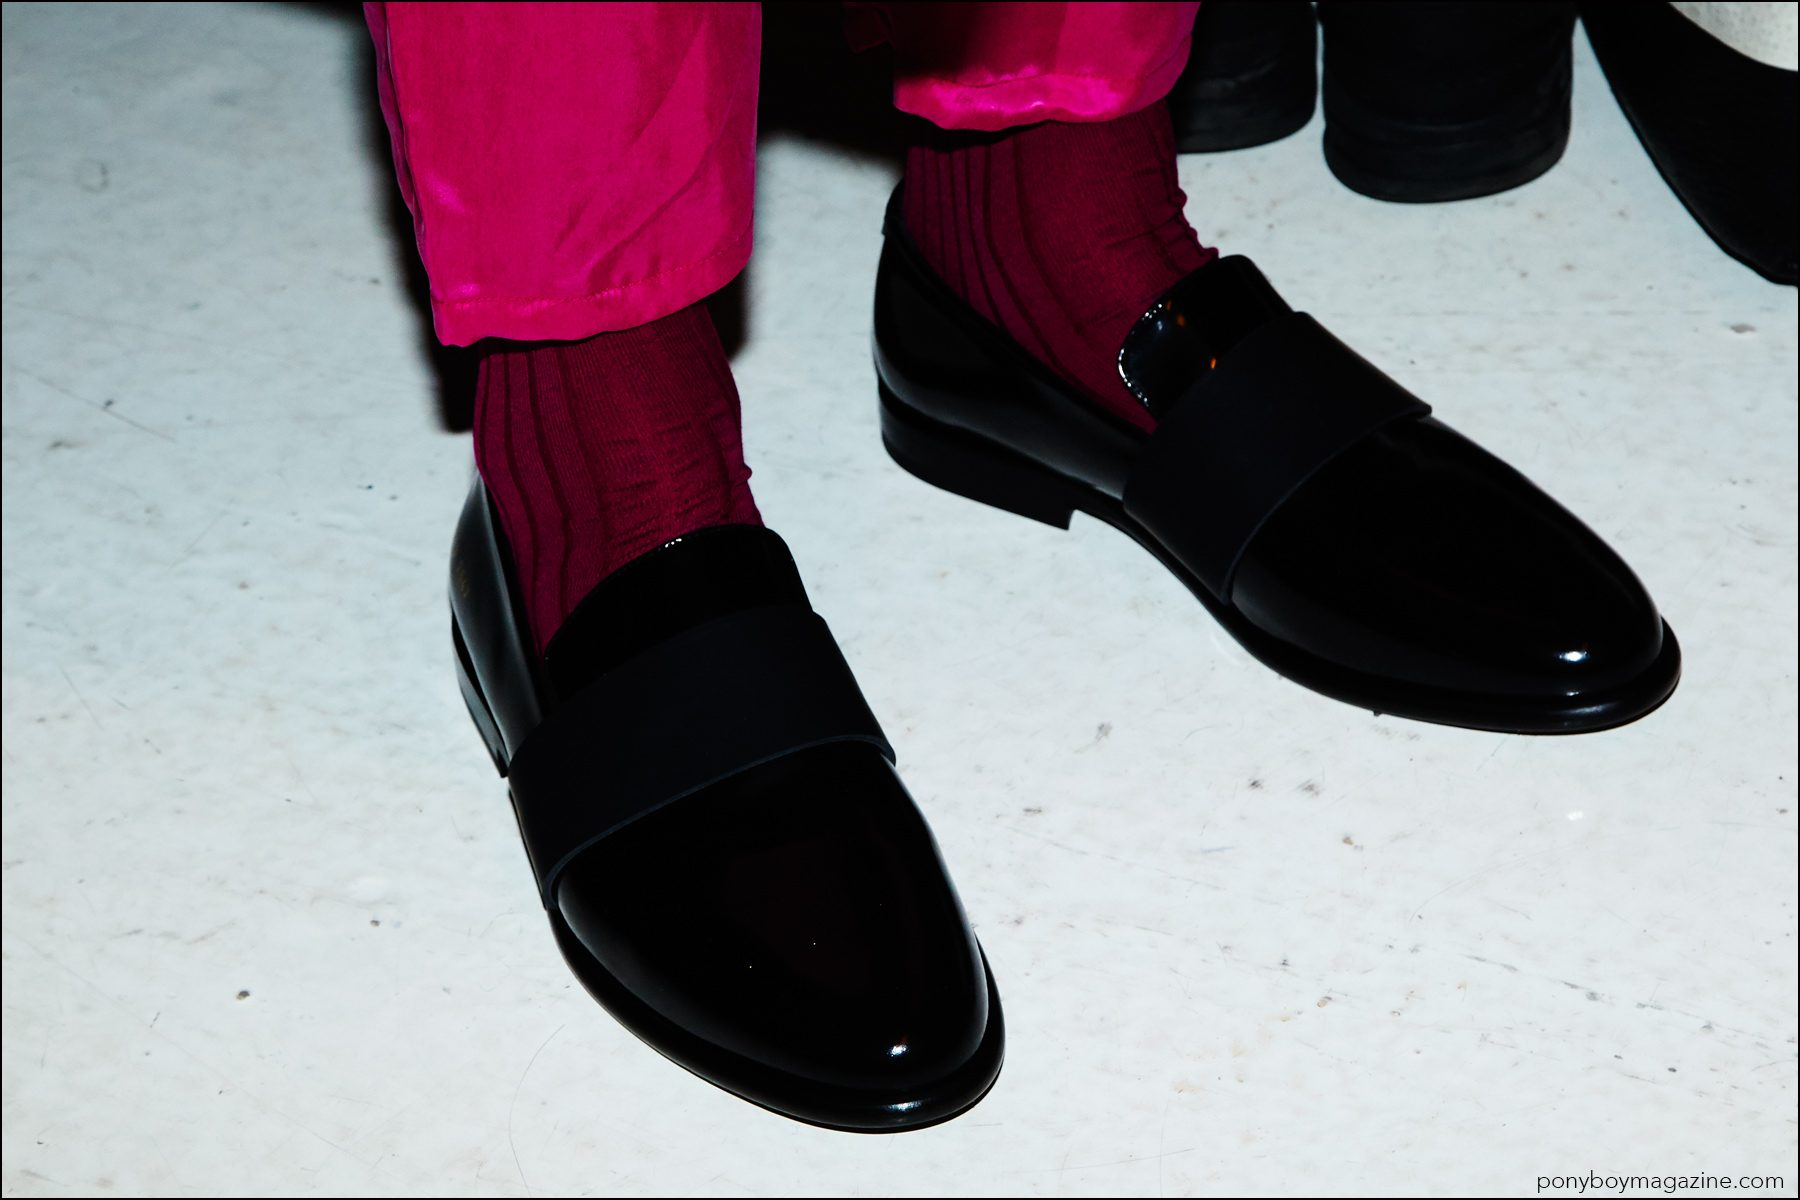 A detail shot of men's shoes and pink trousers, photographed backstage at the Robert Geller Spring/Summer 2017 menswear show. Photography by Alexander Thompson for Ponyboy magazine NY.